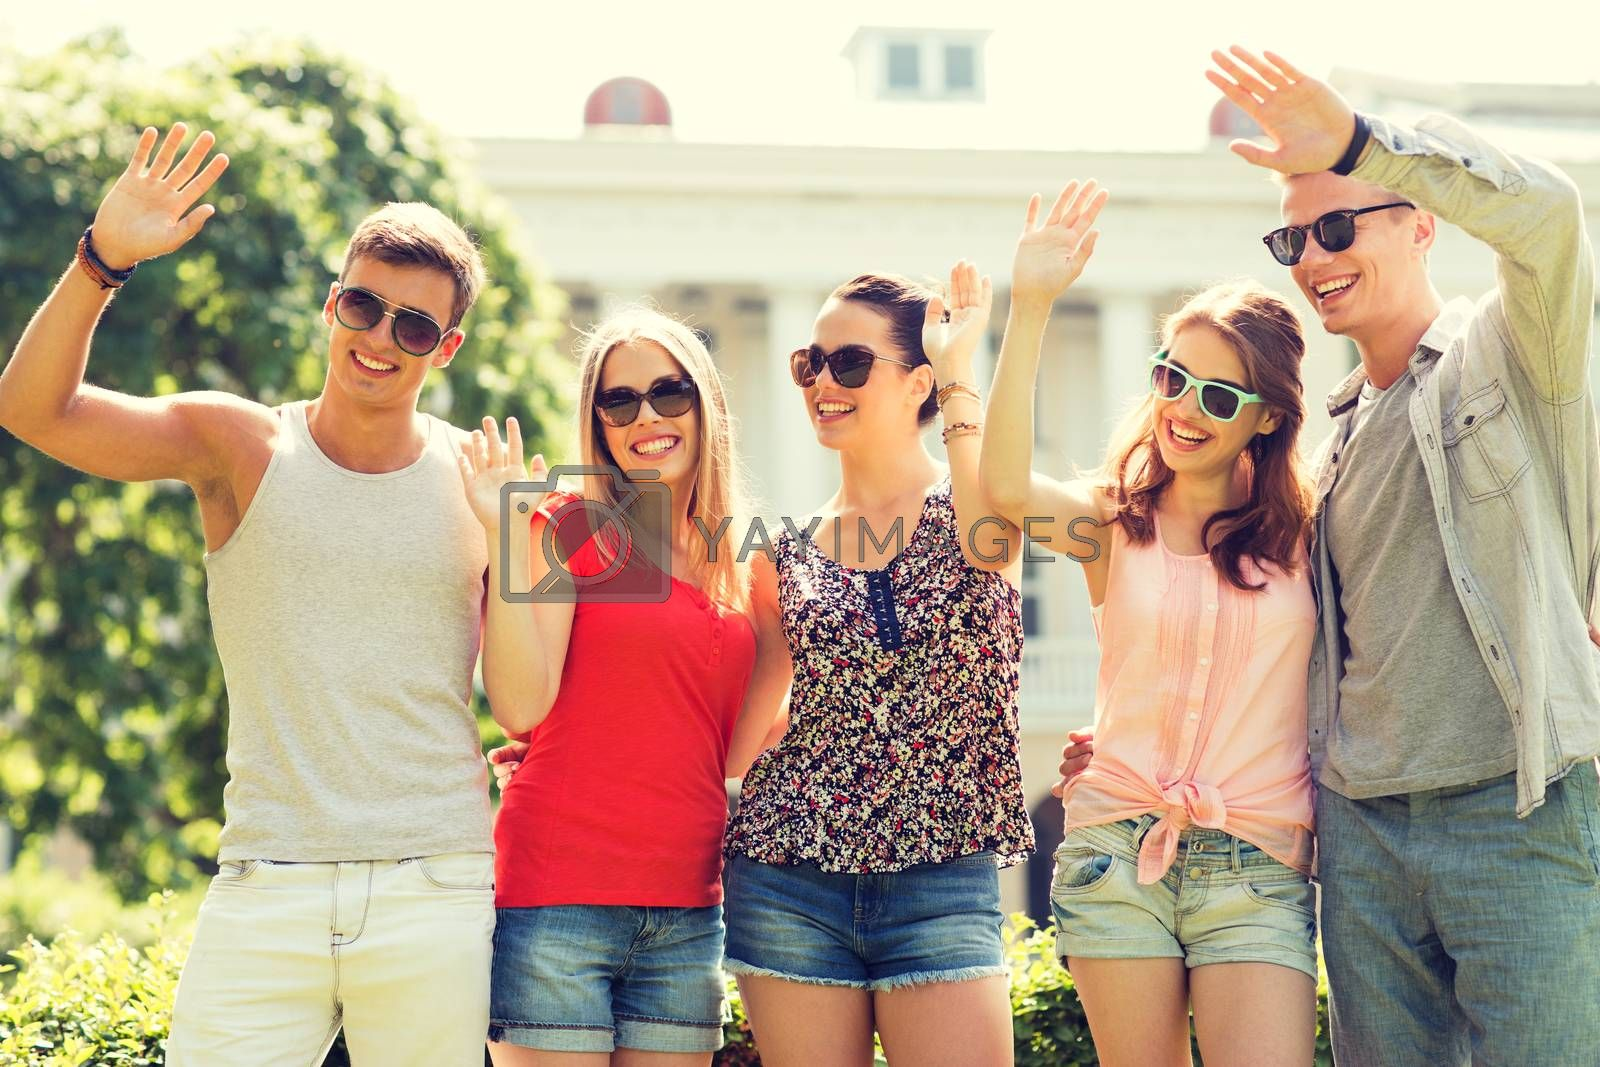 friendship, leisure, summer, gesture and people concept - group of smiling friends waving hands outdoors